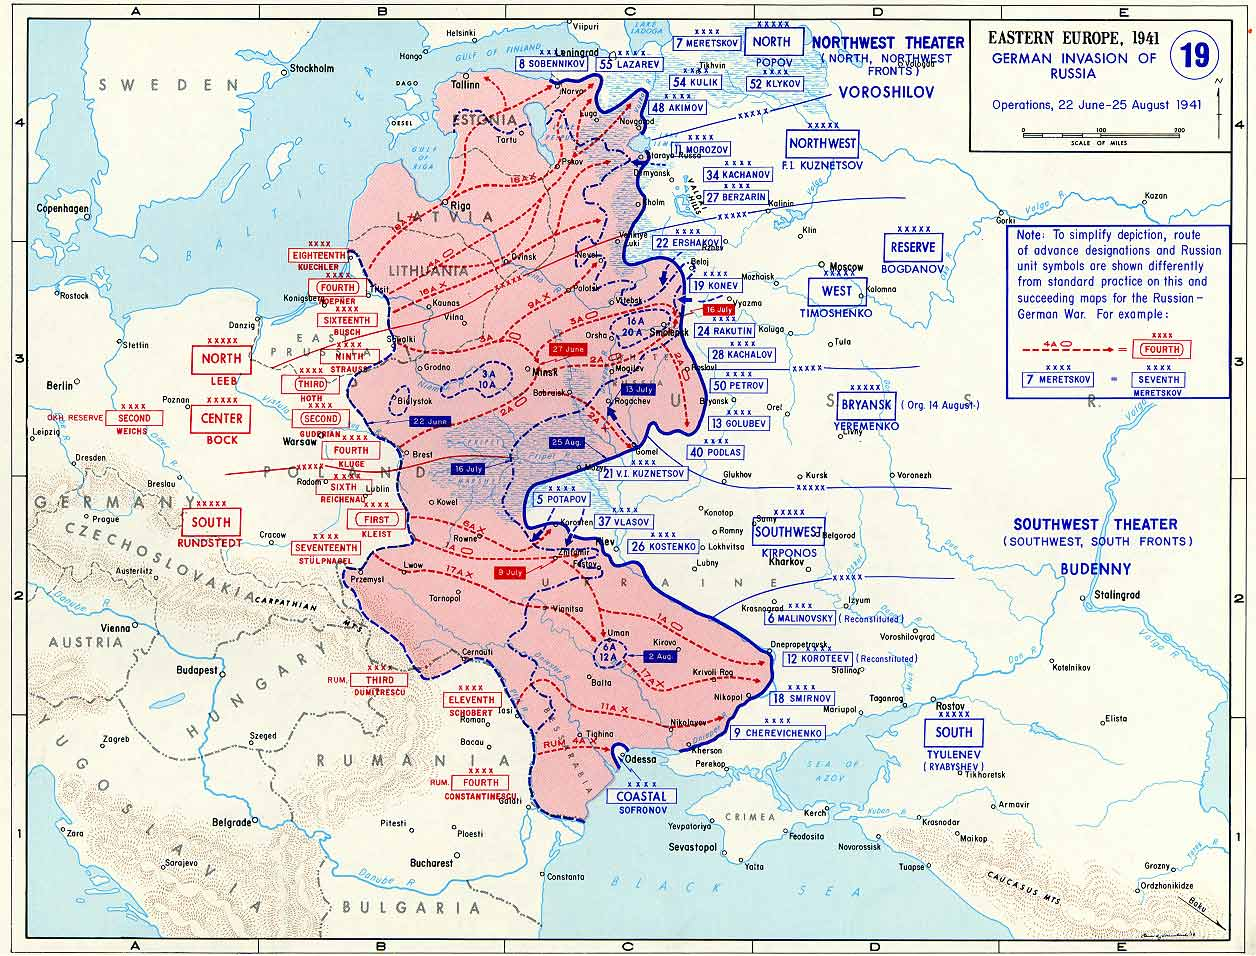 Map of German Invasion of Russia (June-August 1941)